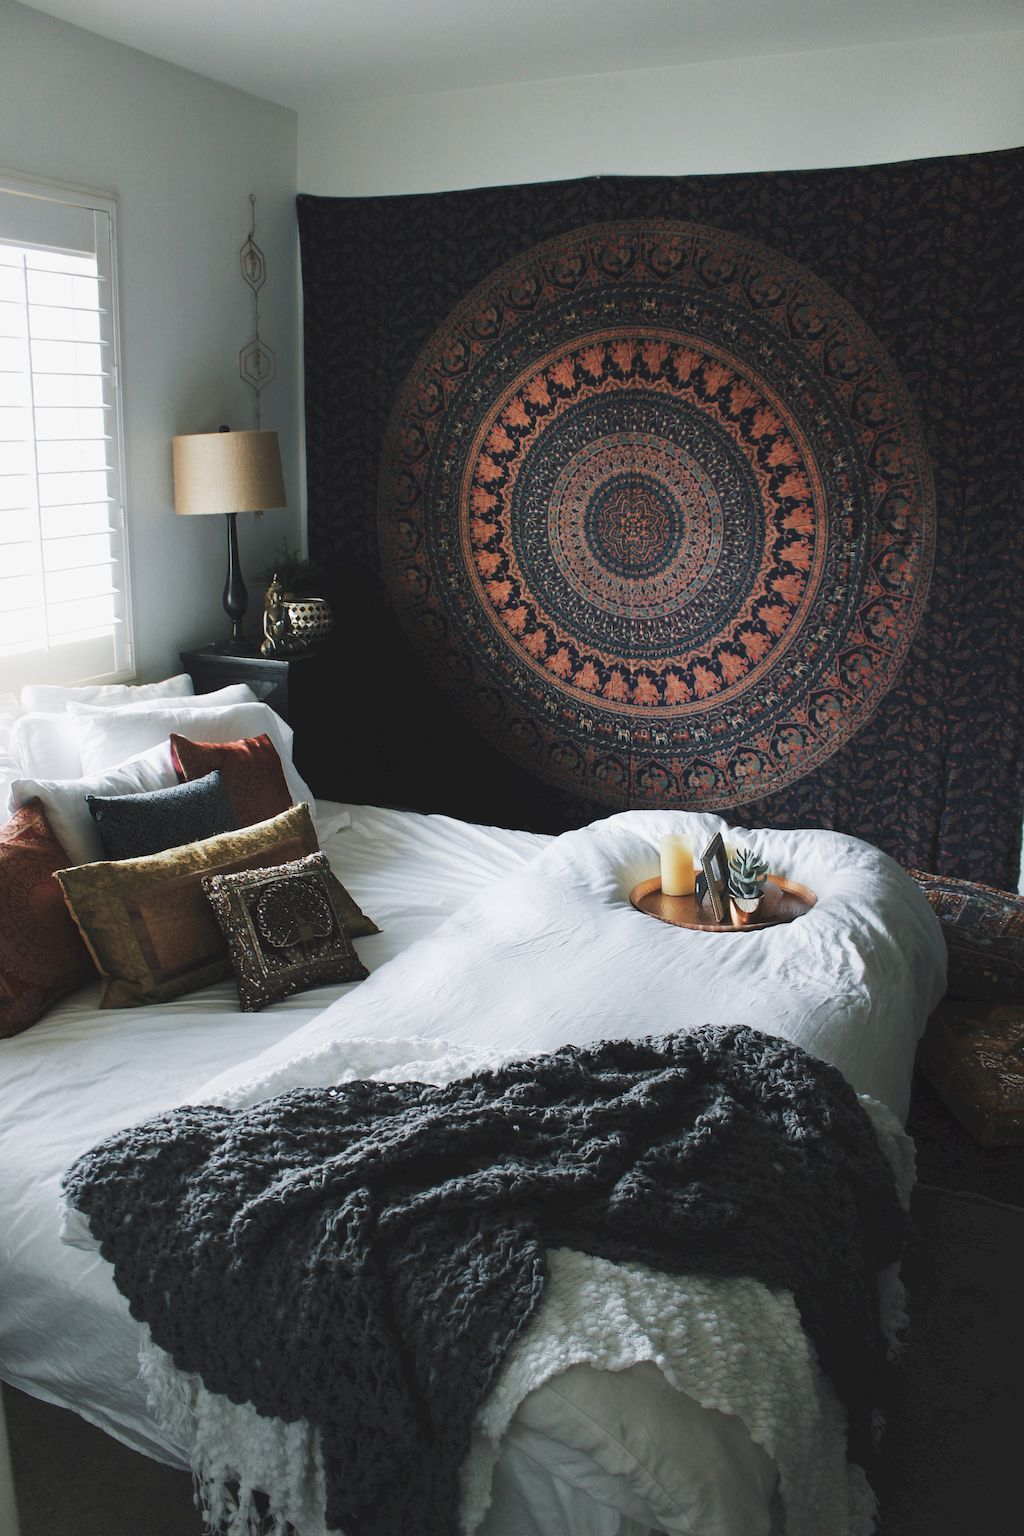 Adorable 85 Elegance Chic Bohemian Bedroom Design Ideas  Https://decorapatio.com/